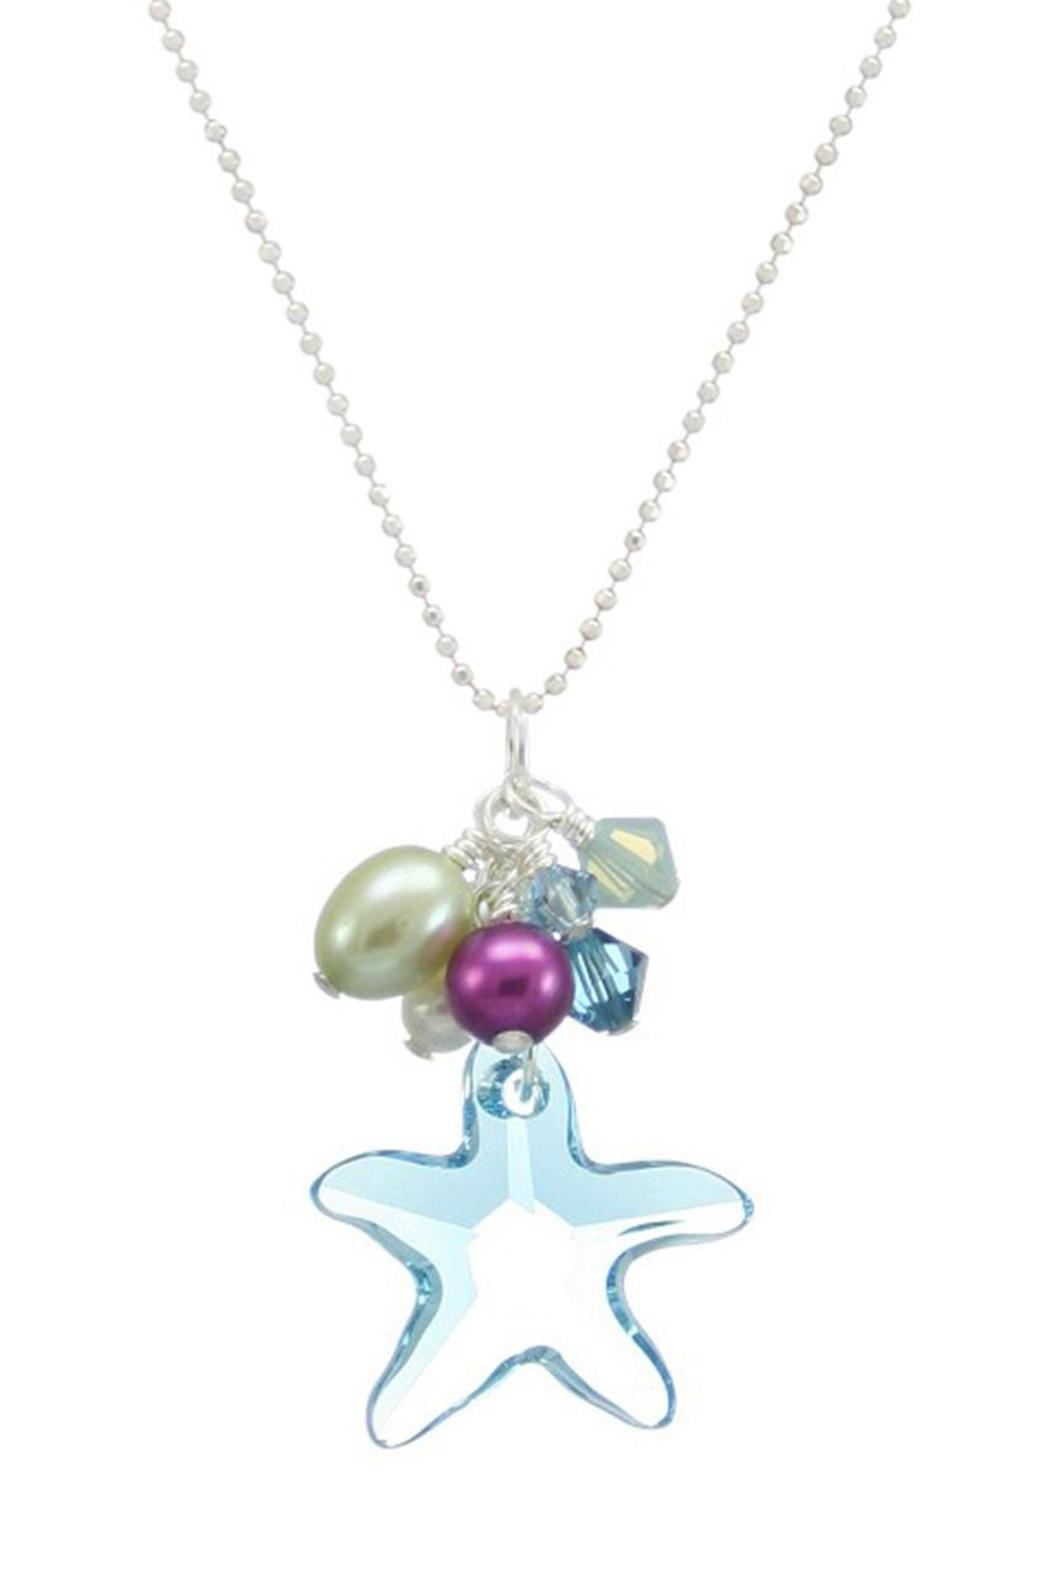 Moonrise jewelry swarovski starfish necklace from virginia beach moonrise jewelry swarovski starfish necklace front cropped image aloadofball Image collections